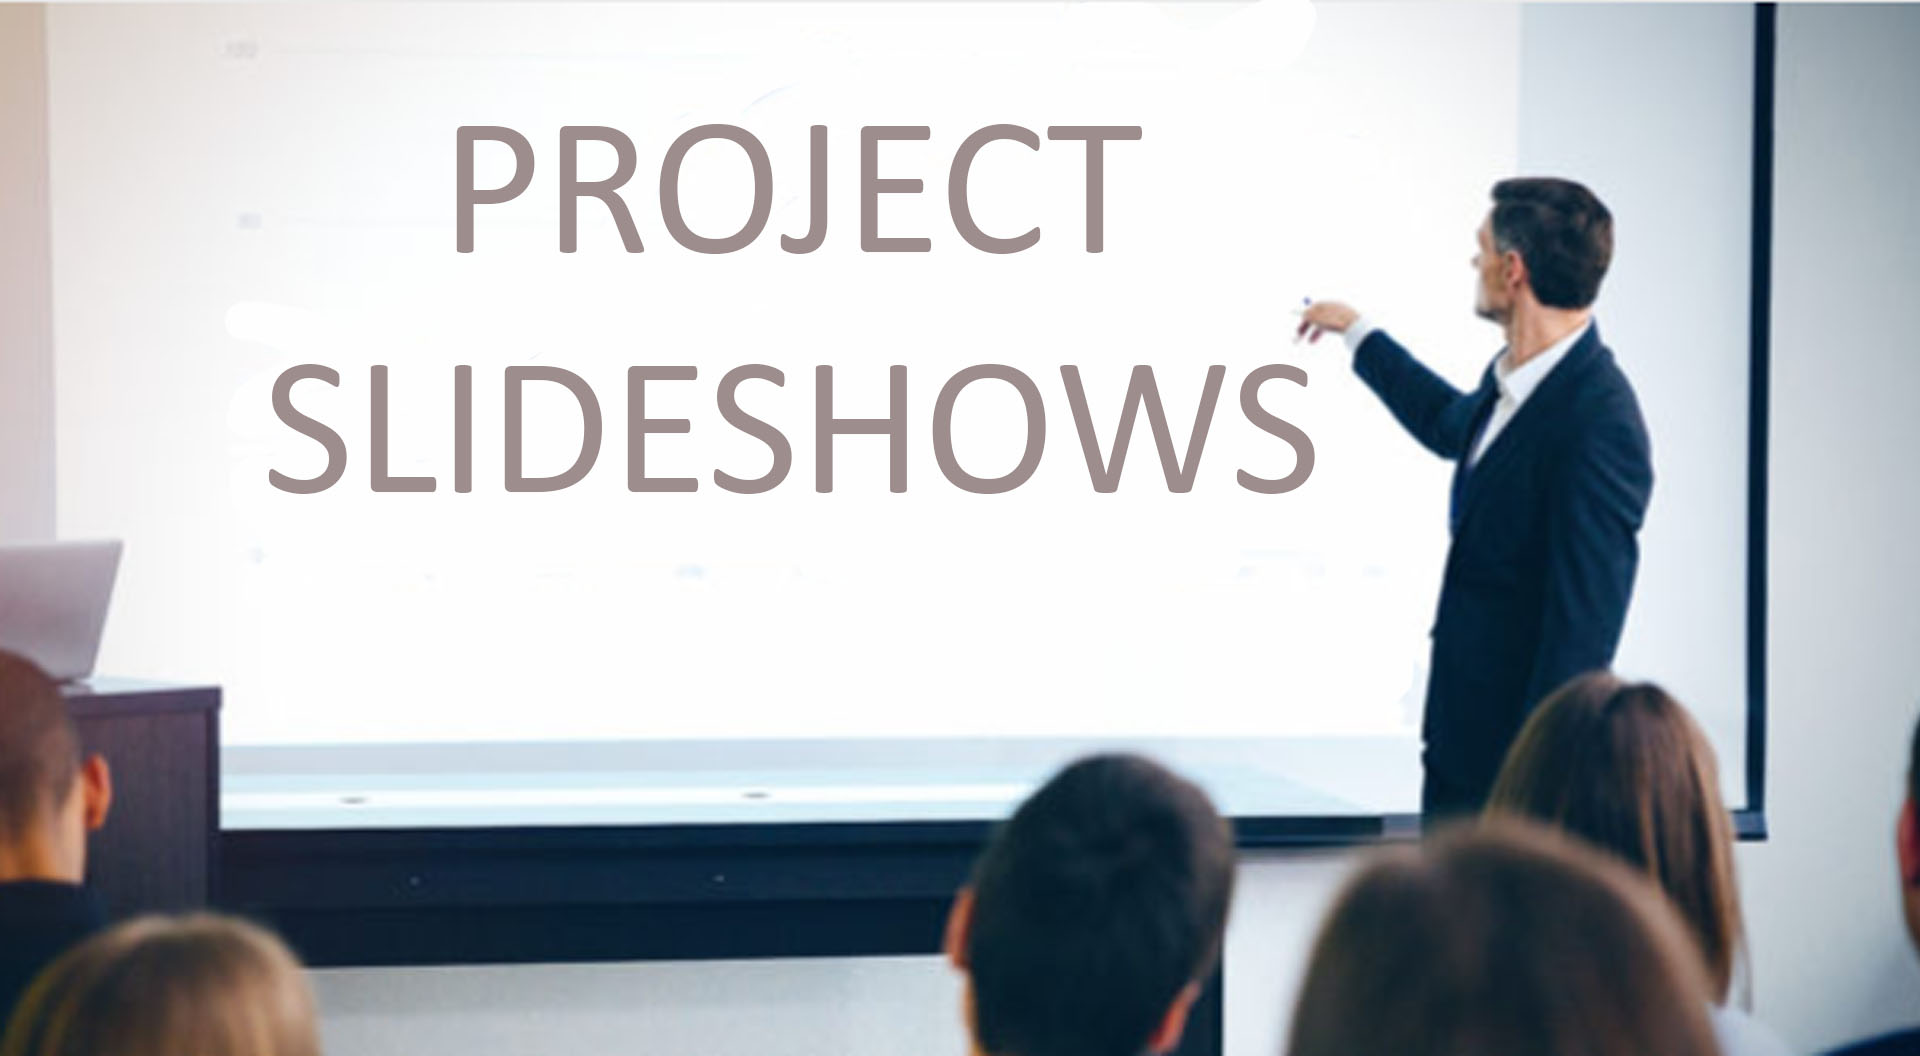 PROJECT SLIDESHOWS